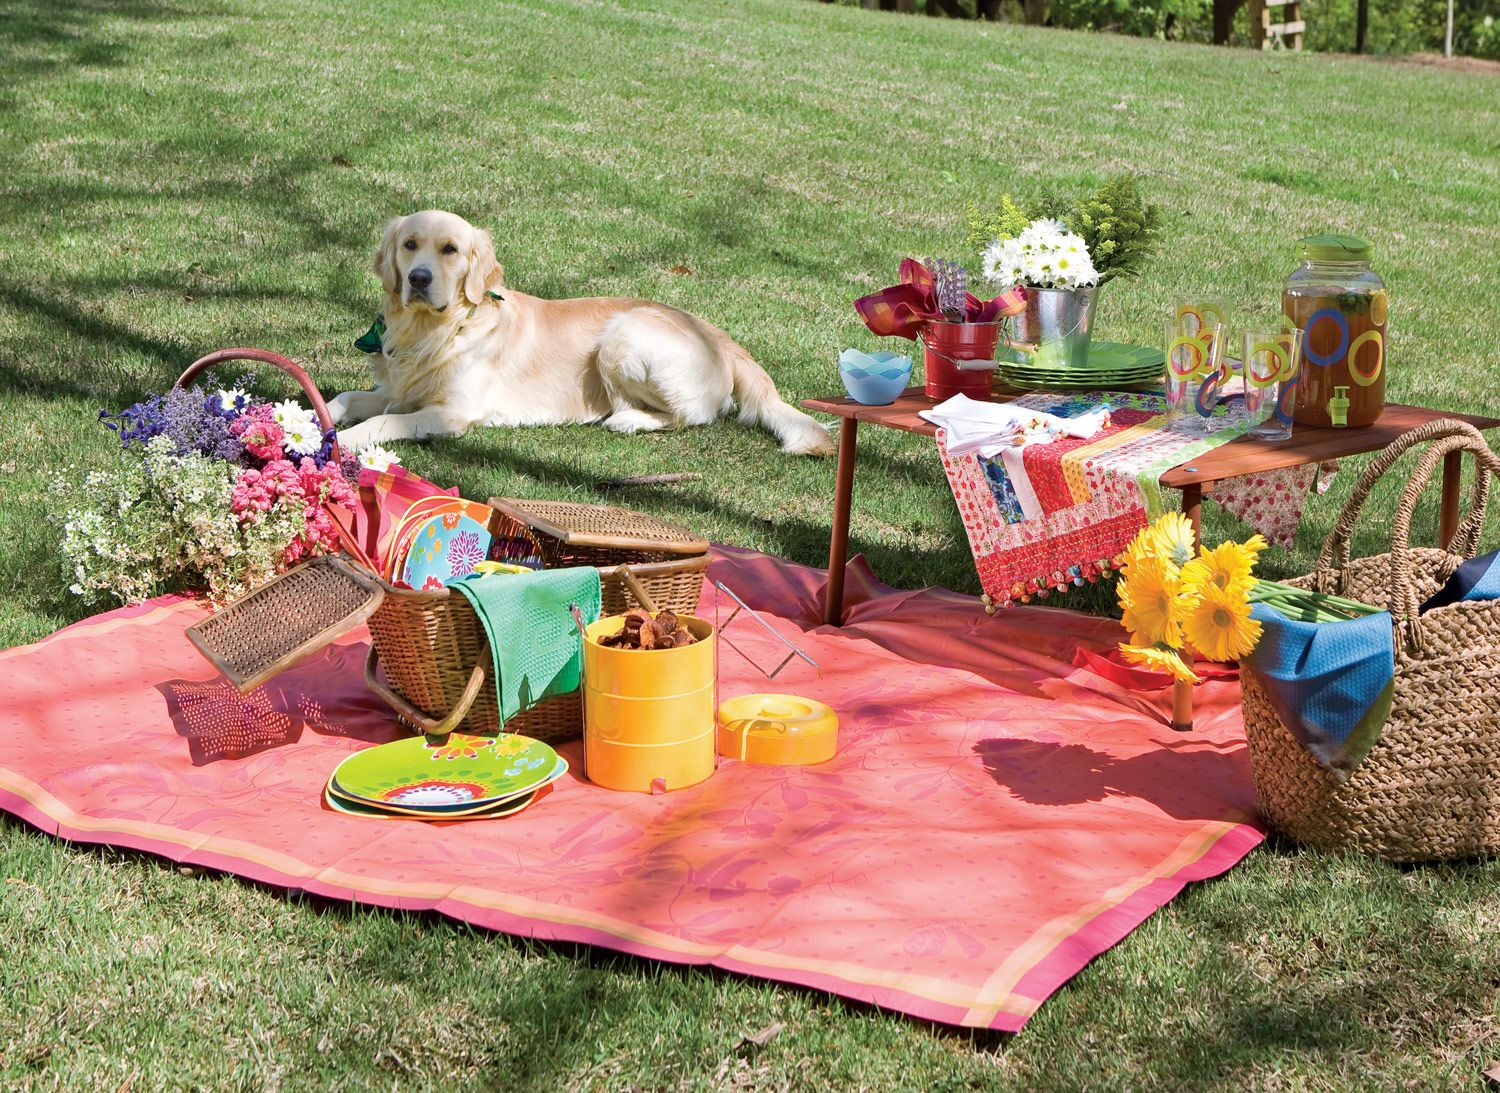 creative ideas for packing the perfect backyard summer picnic